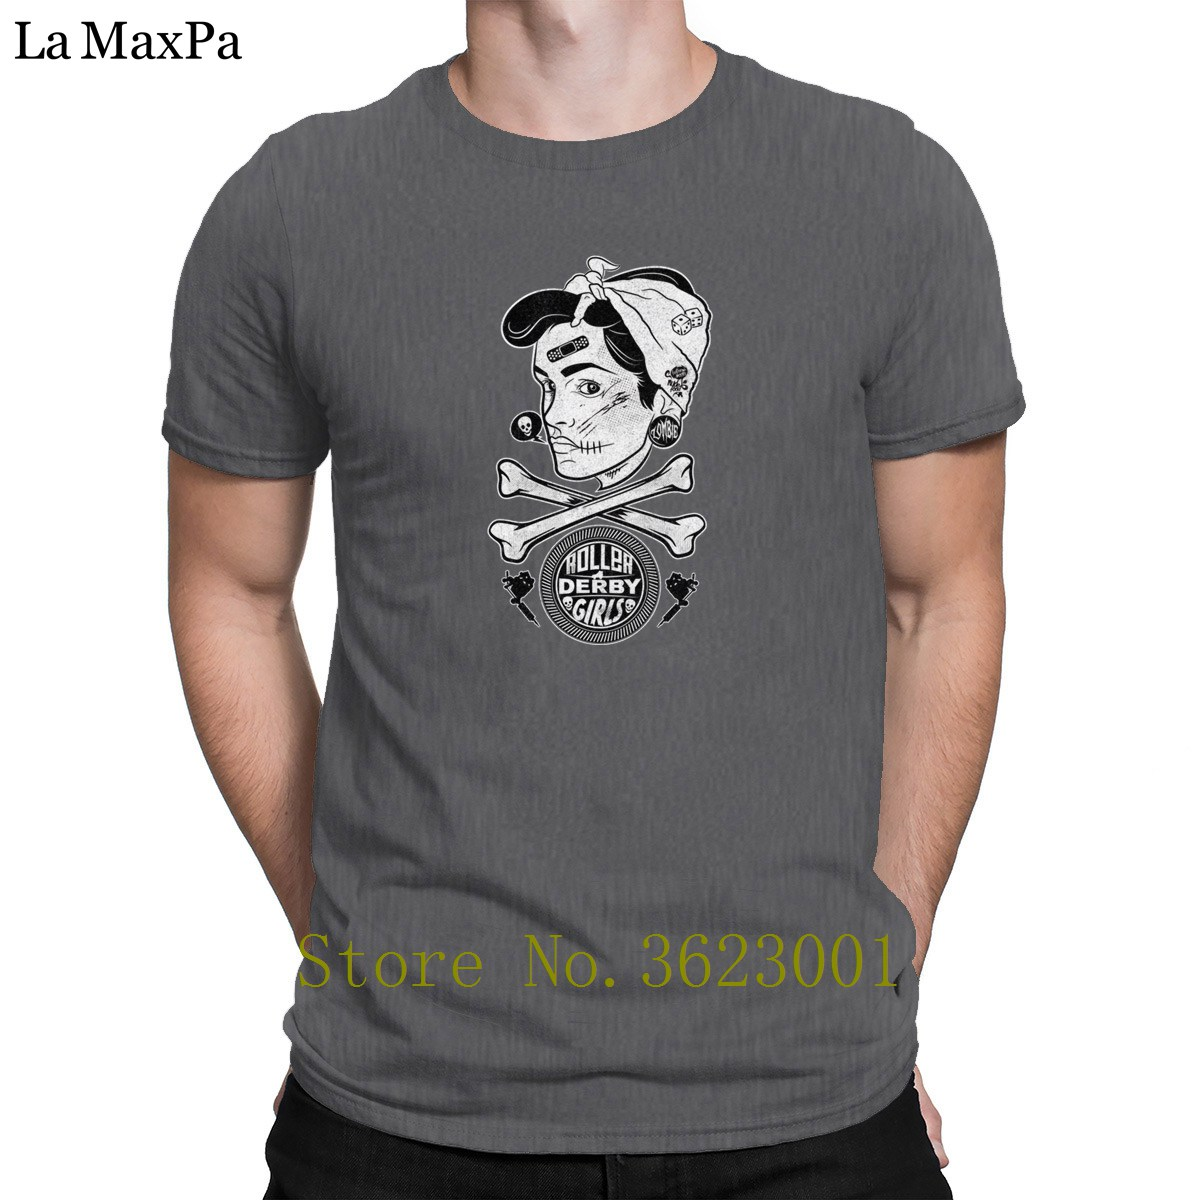 Knitted S-3xl Tee Shirt For Men Zombie Roller Derby T-Shirt Slim Slogan T Shirt For Men Summer Style Tshirt Nice Pop Top Tee